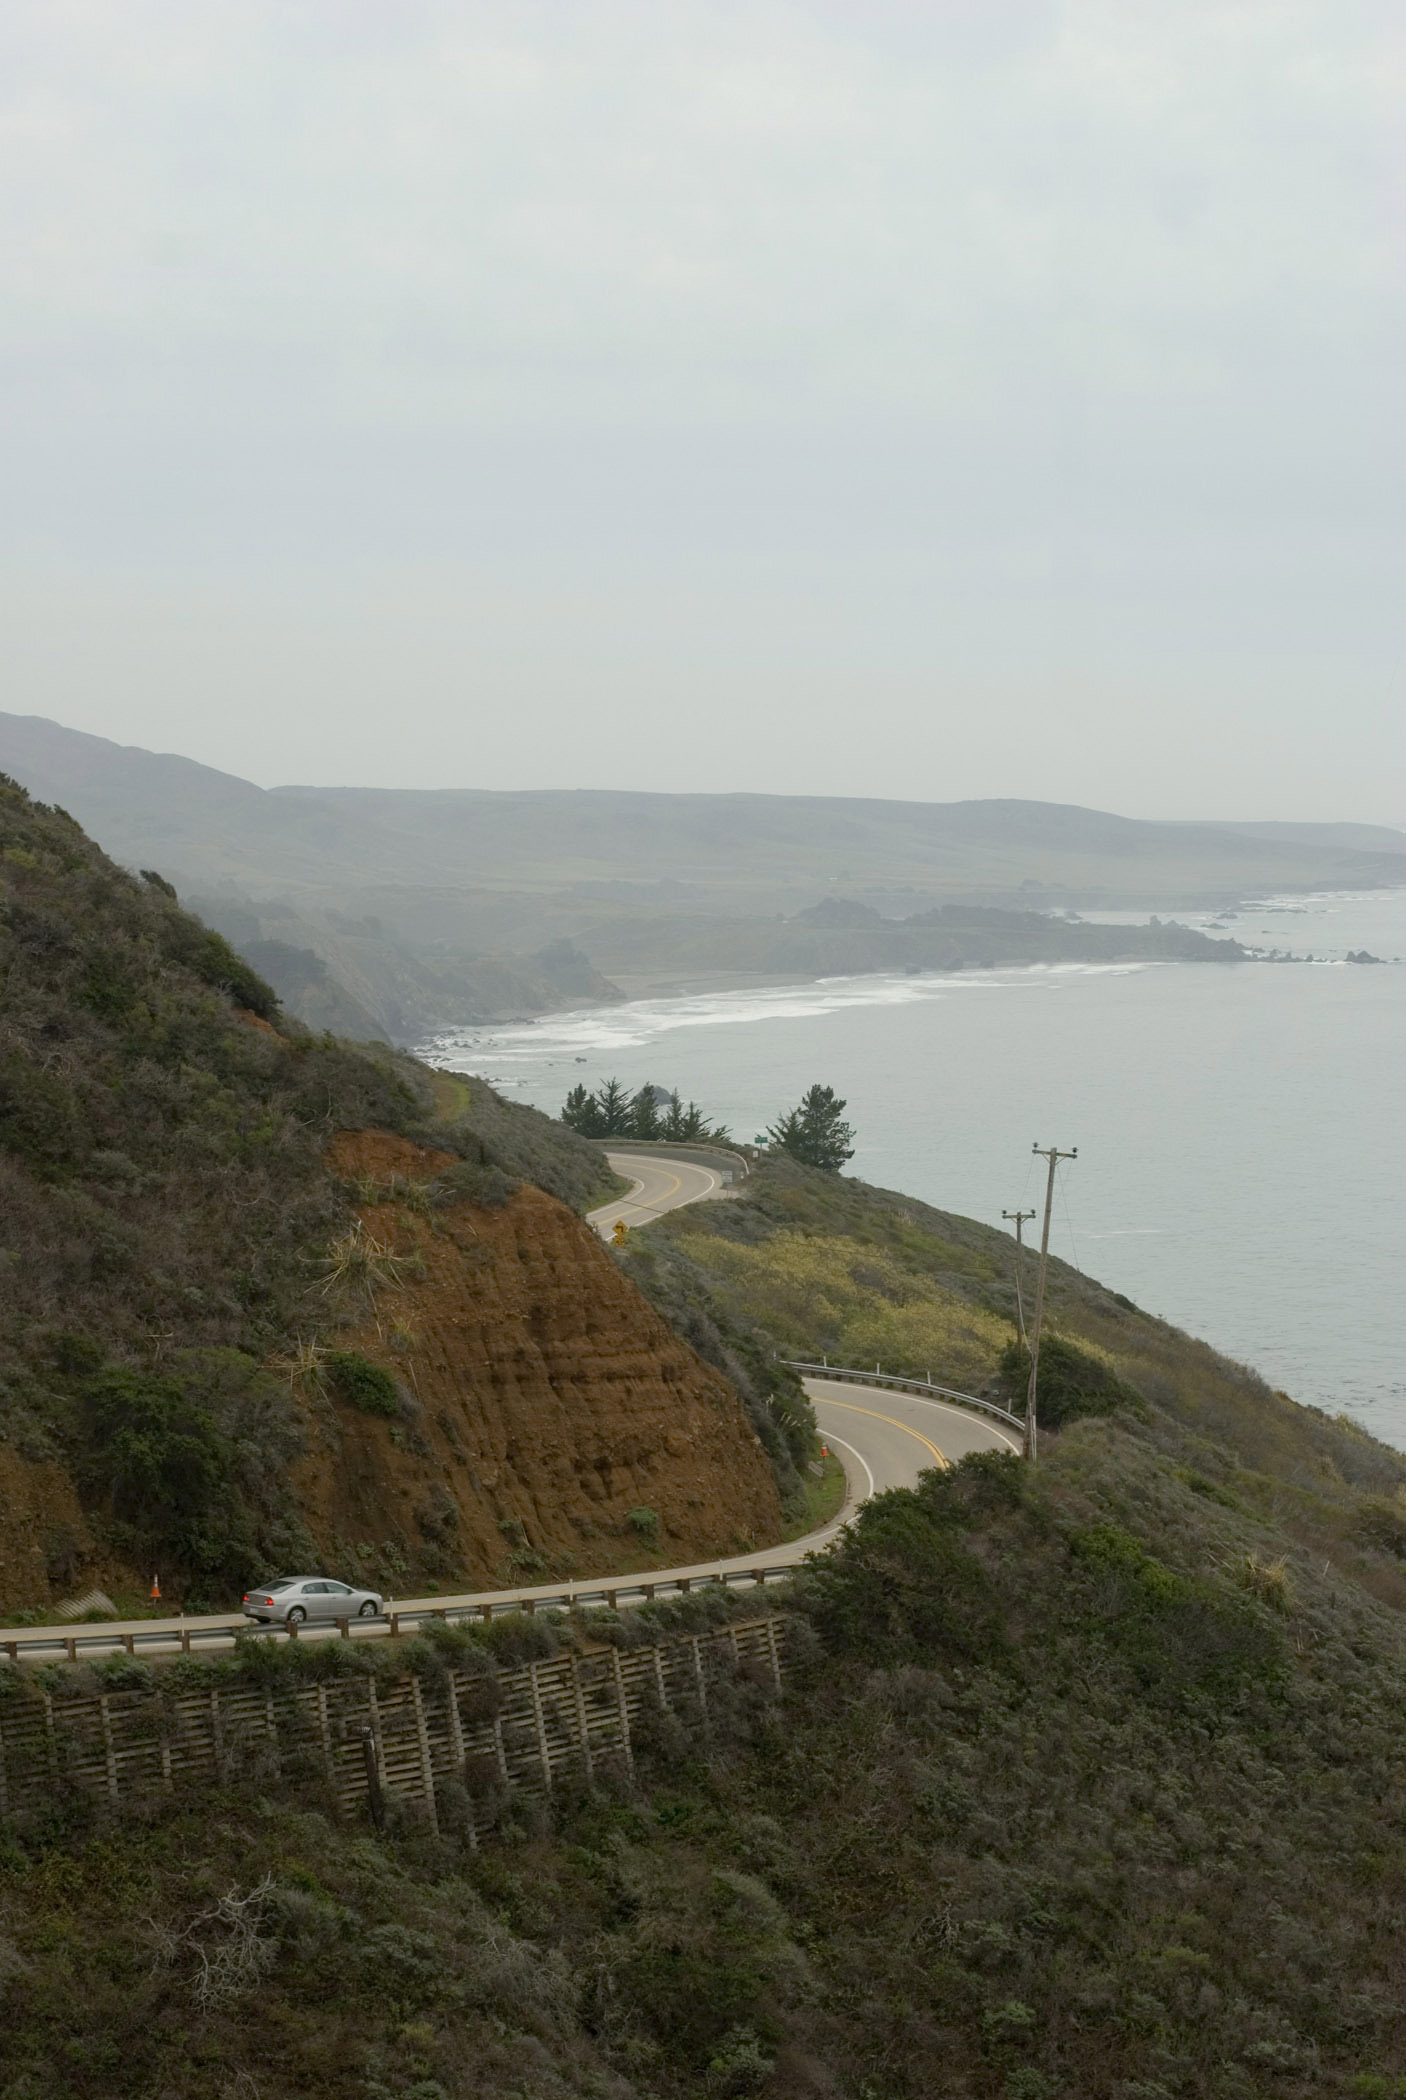 Coastal view of the Big Sur Highway, or Route No 1, on the central Californian coast showing the coastline and bends in the road